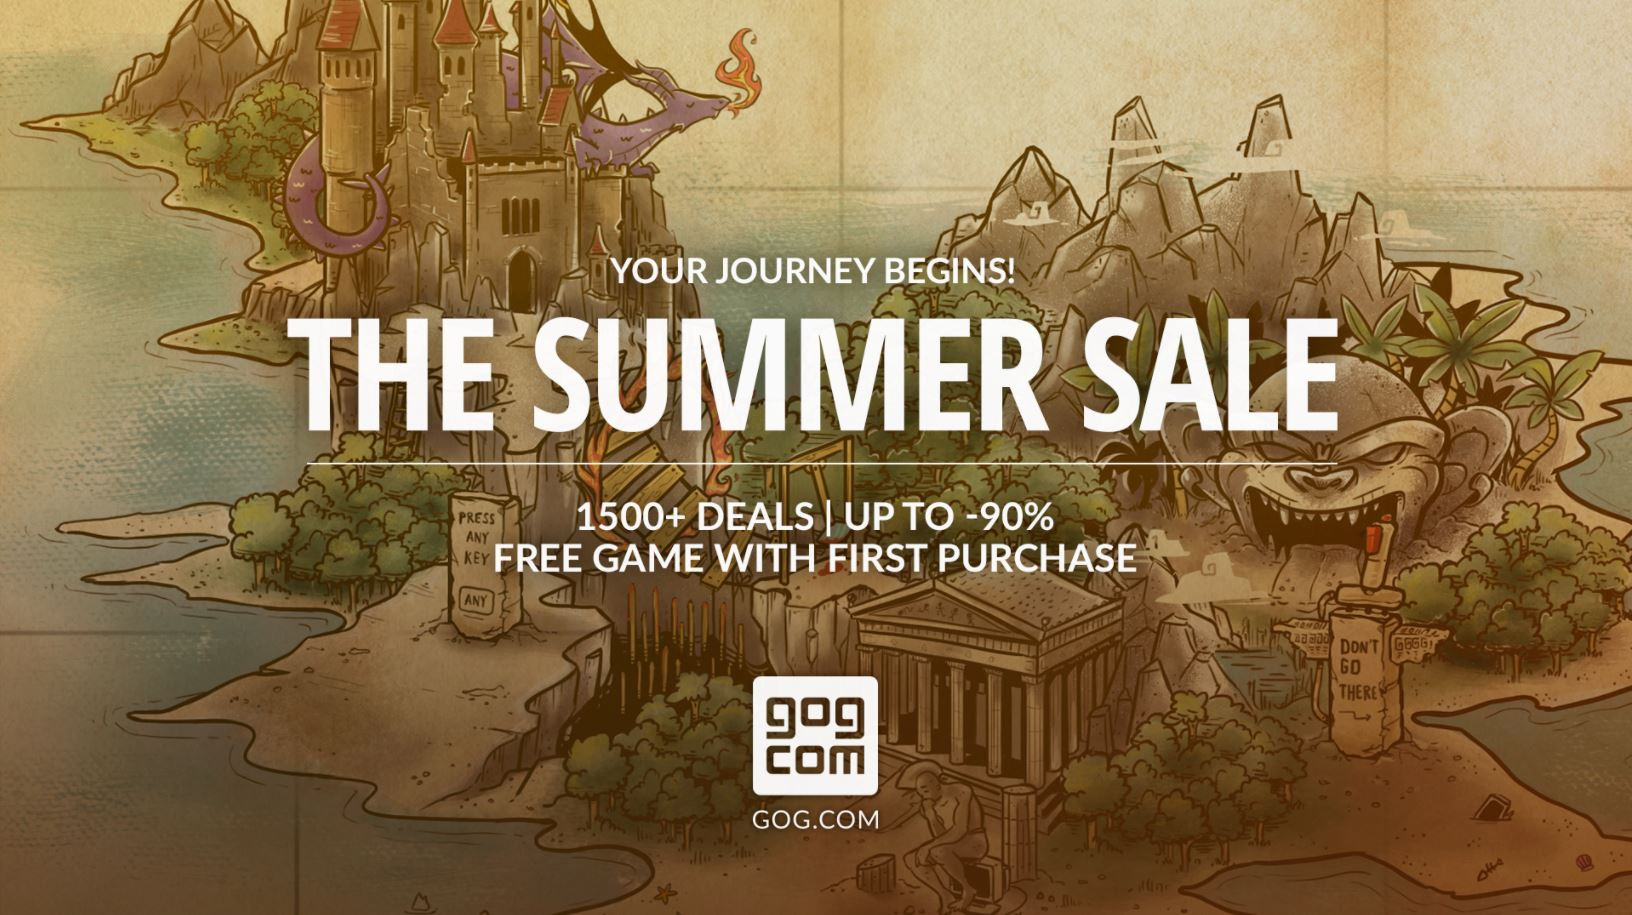 GOG unleashes their annual Summer Sale with discounts galore